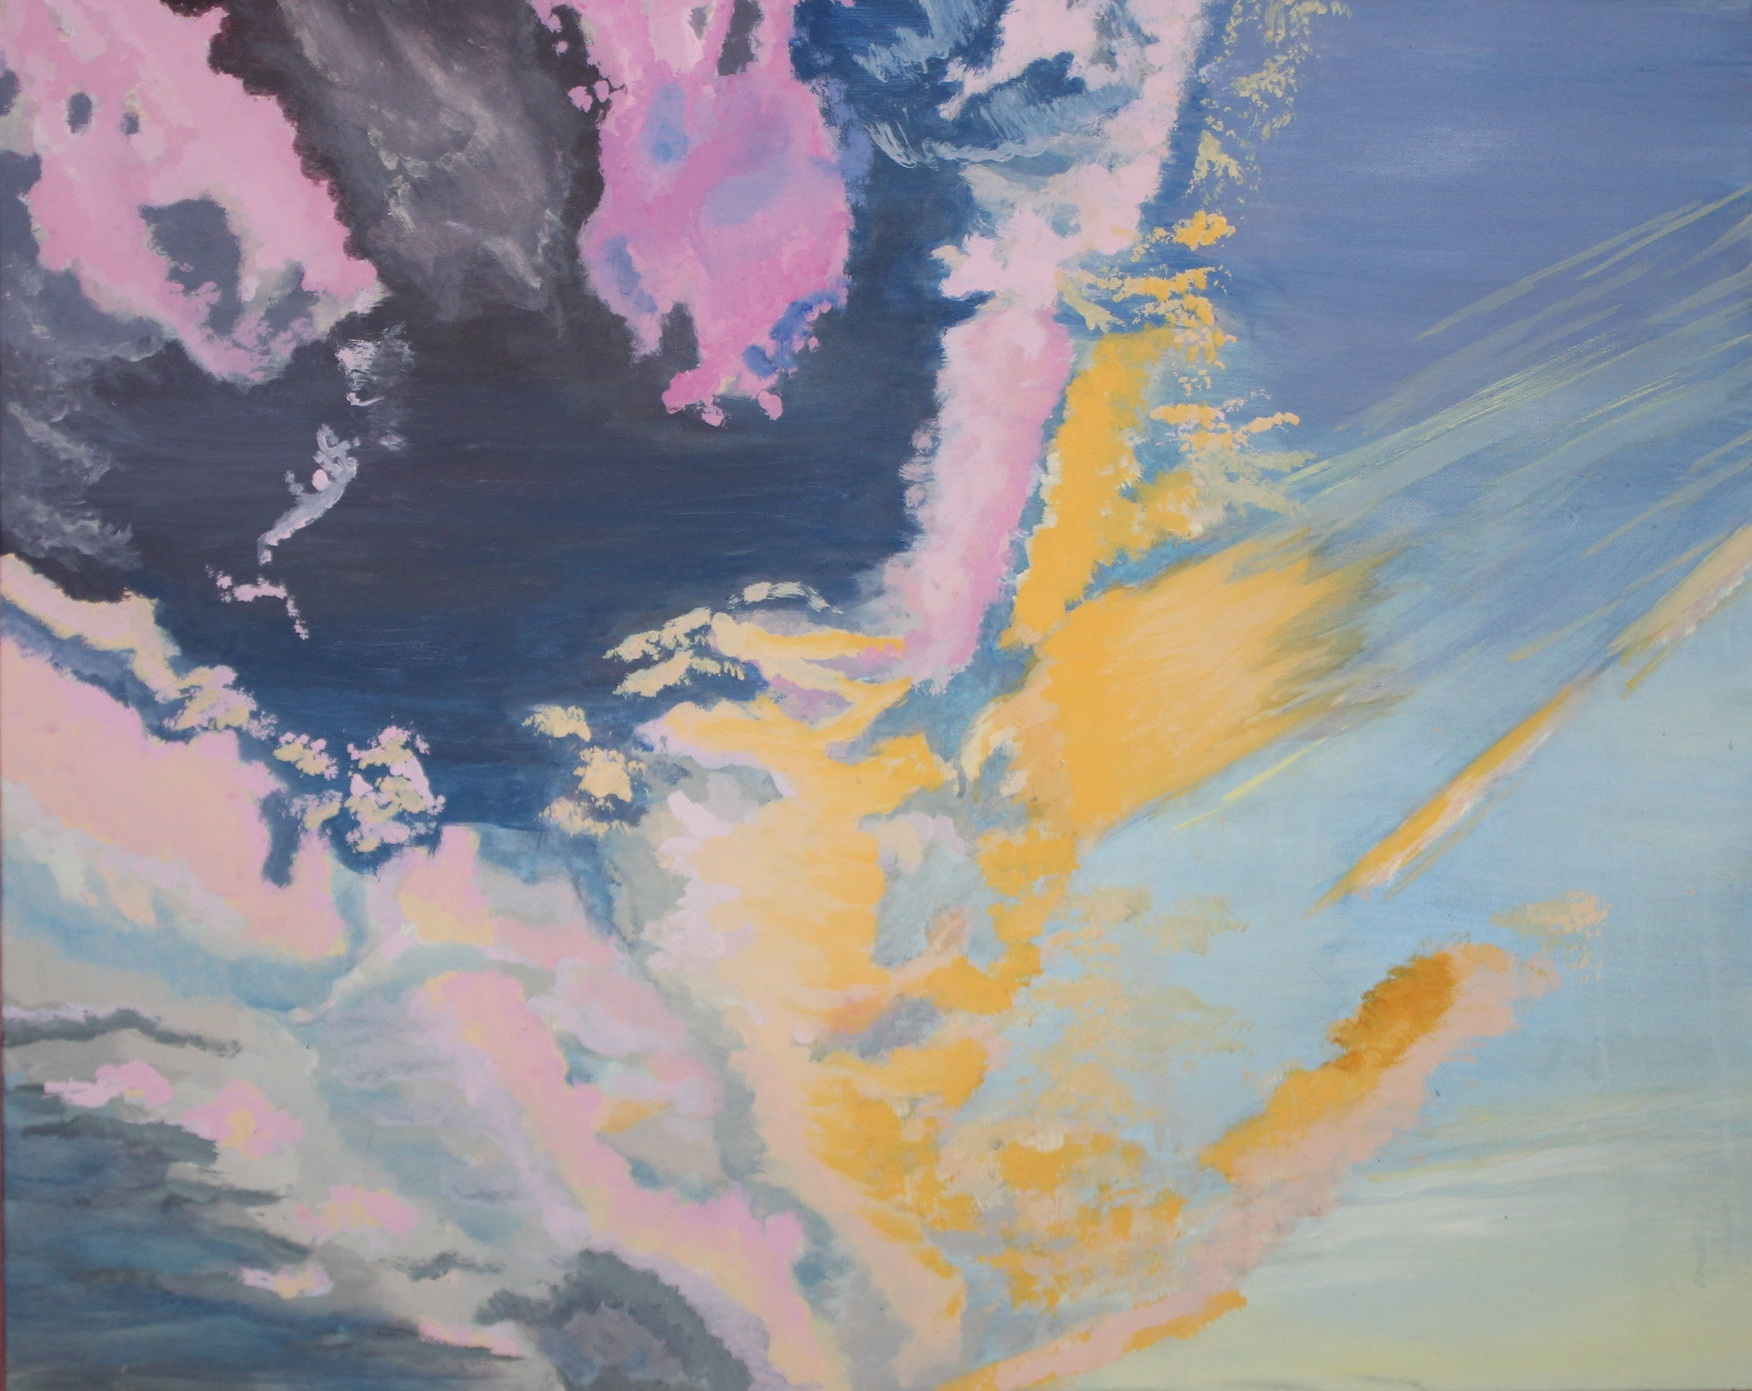 paintings (acrylic, watercolor, and gauche on canvas) -